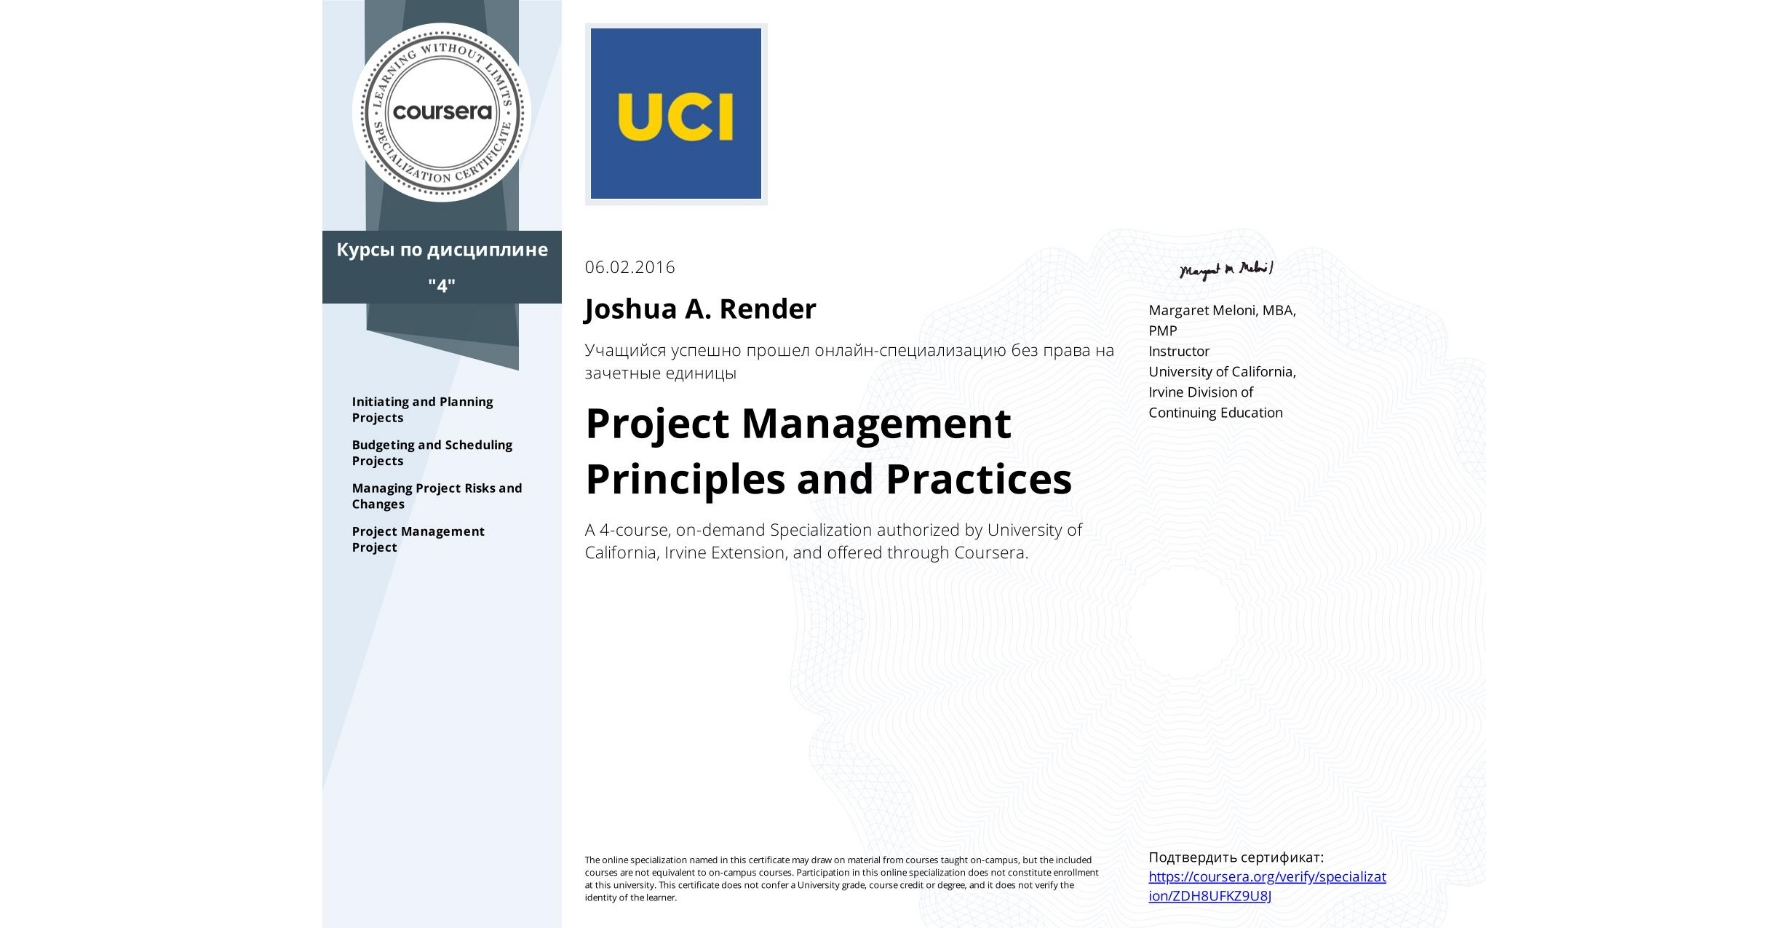 View certificate for Joshua A. Render, Project Management Principles and Practices, offered through Coursera. A 4-course, on-demand Specialization authorized by University of California, Irvine Extension, and offered through Coursera.